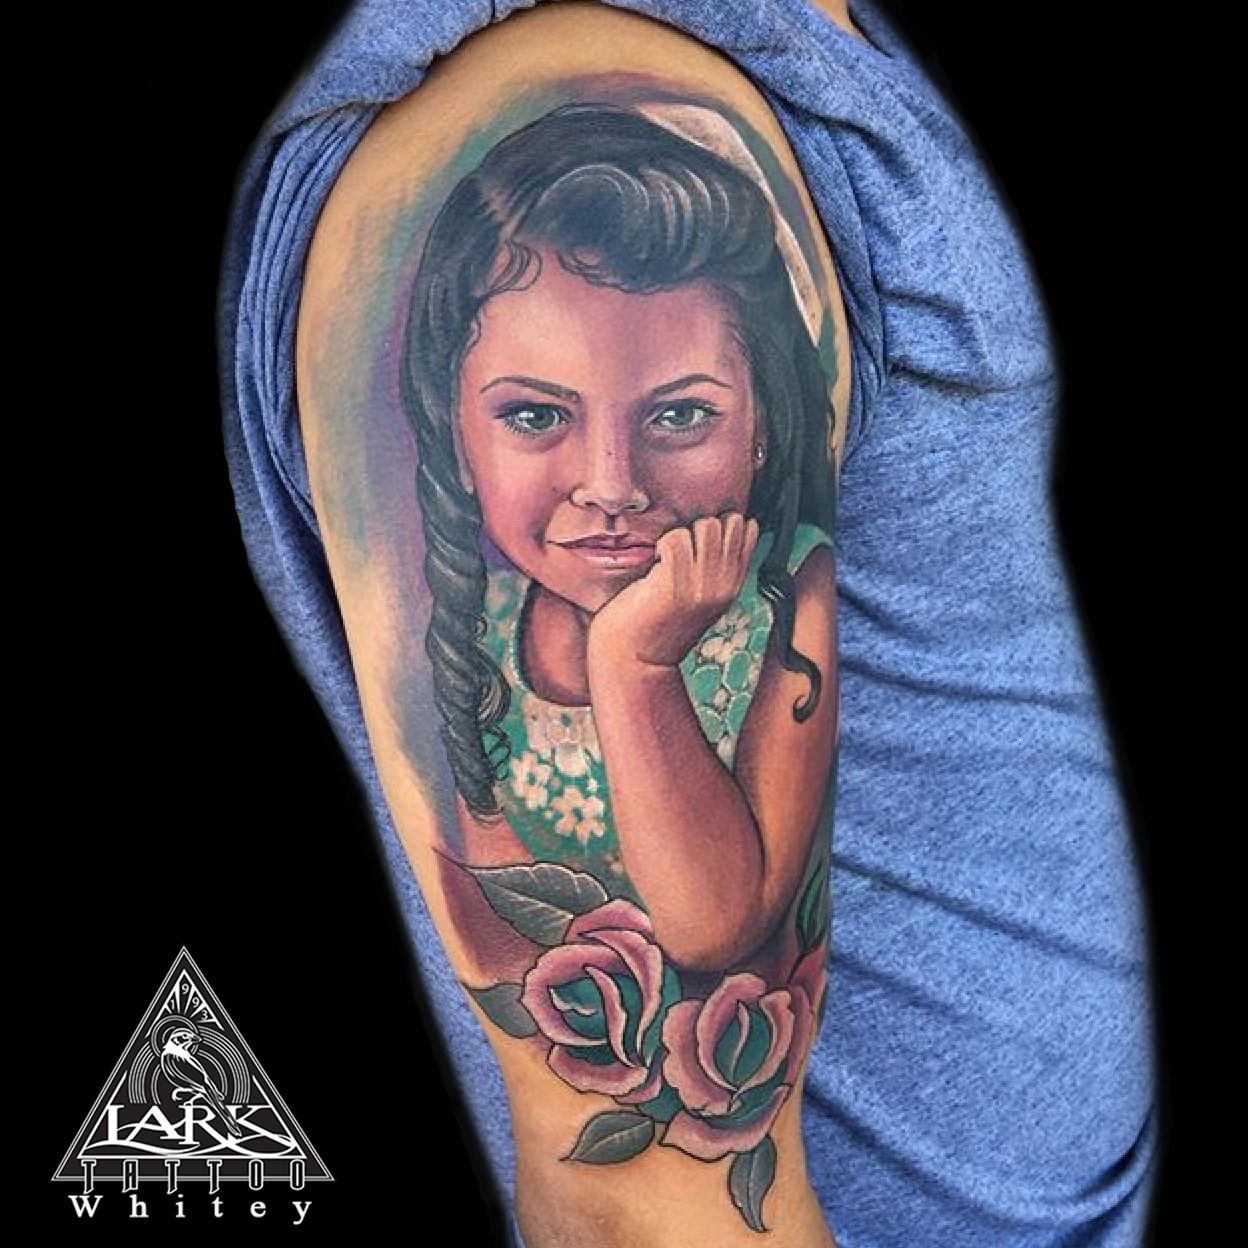 2526dd4025b52 Color portrait tattoo by Lark Tattoo artist Whitey. See more of Whitey's  work here: